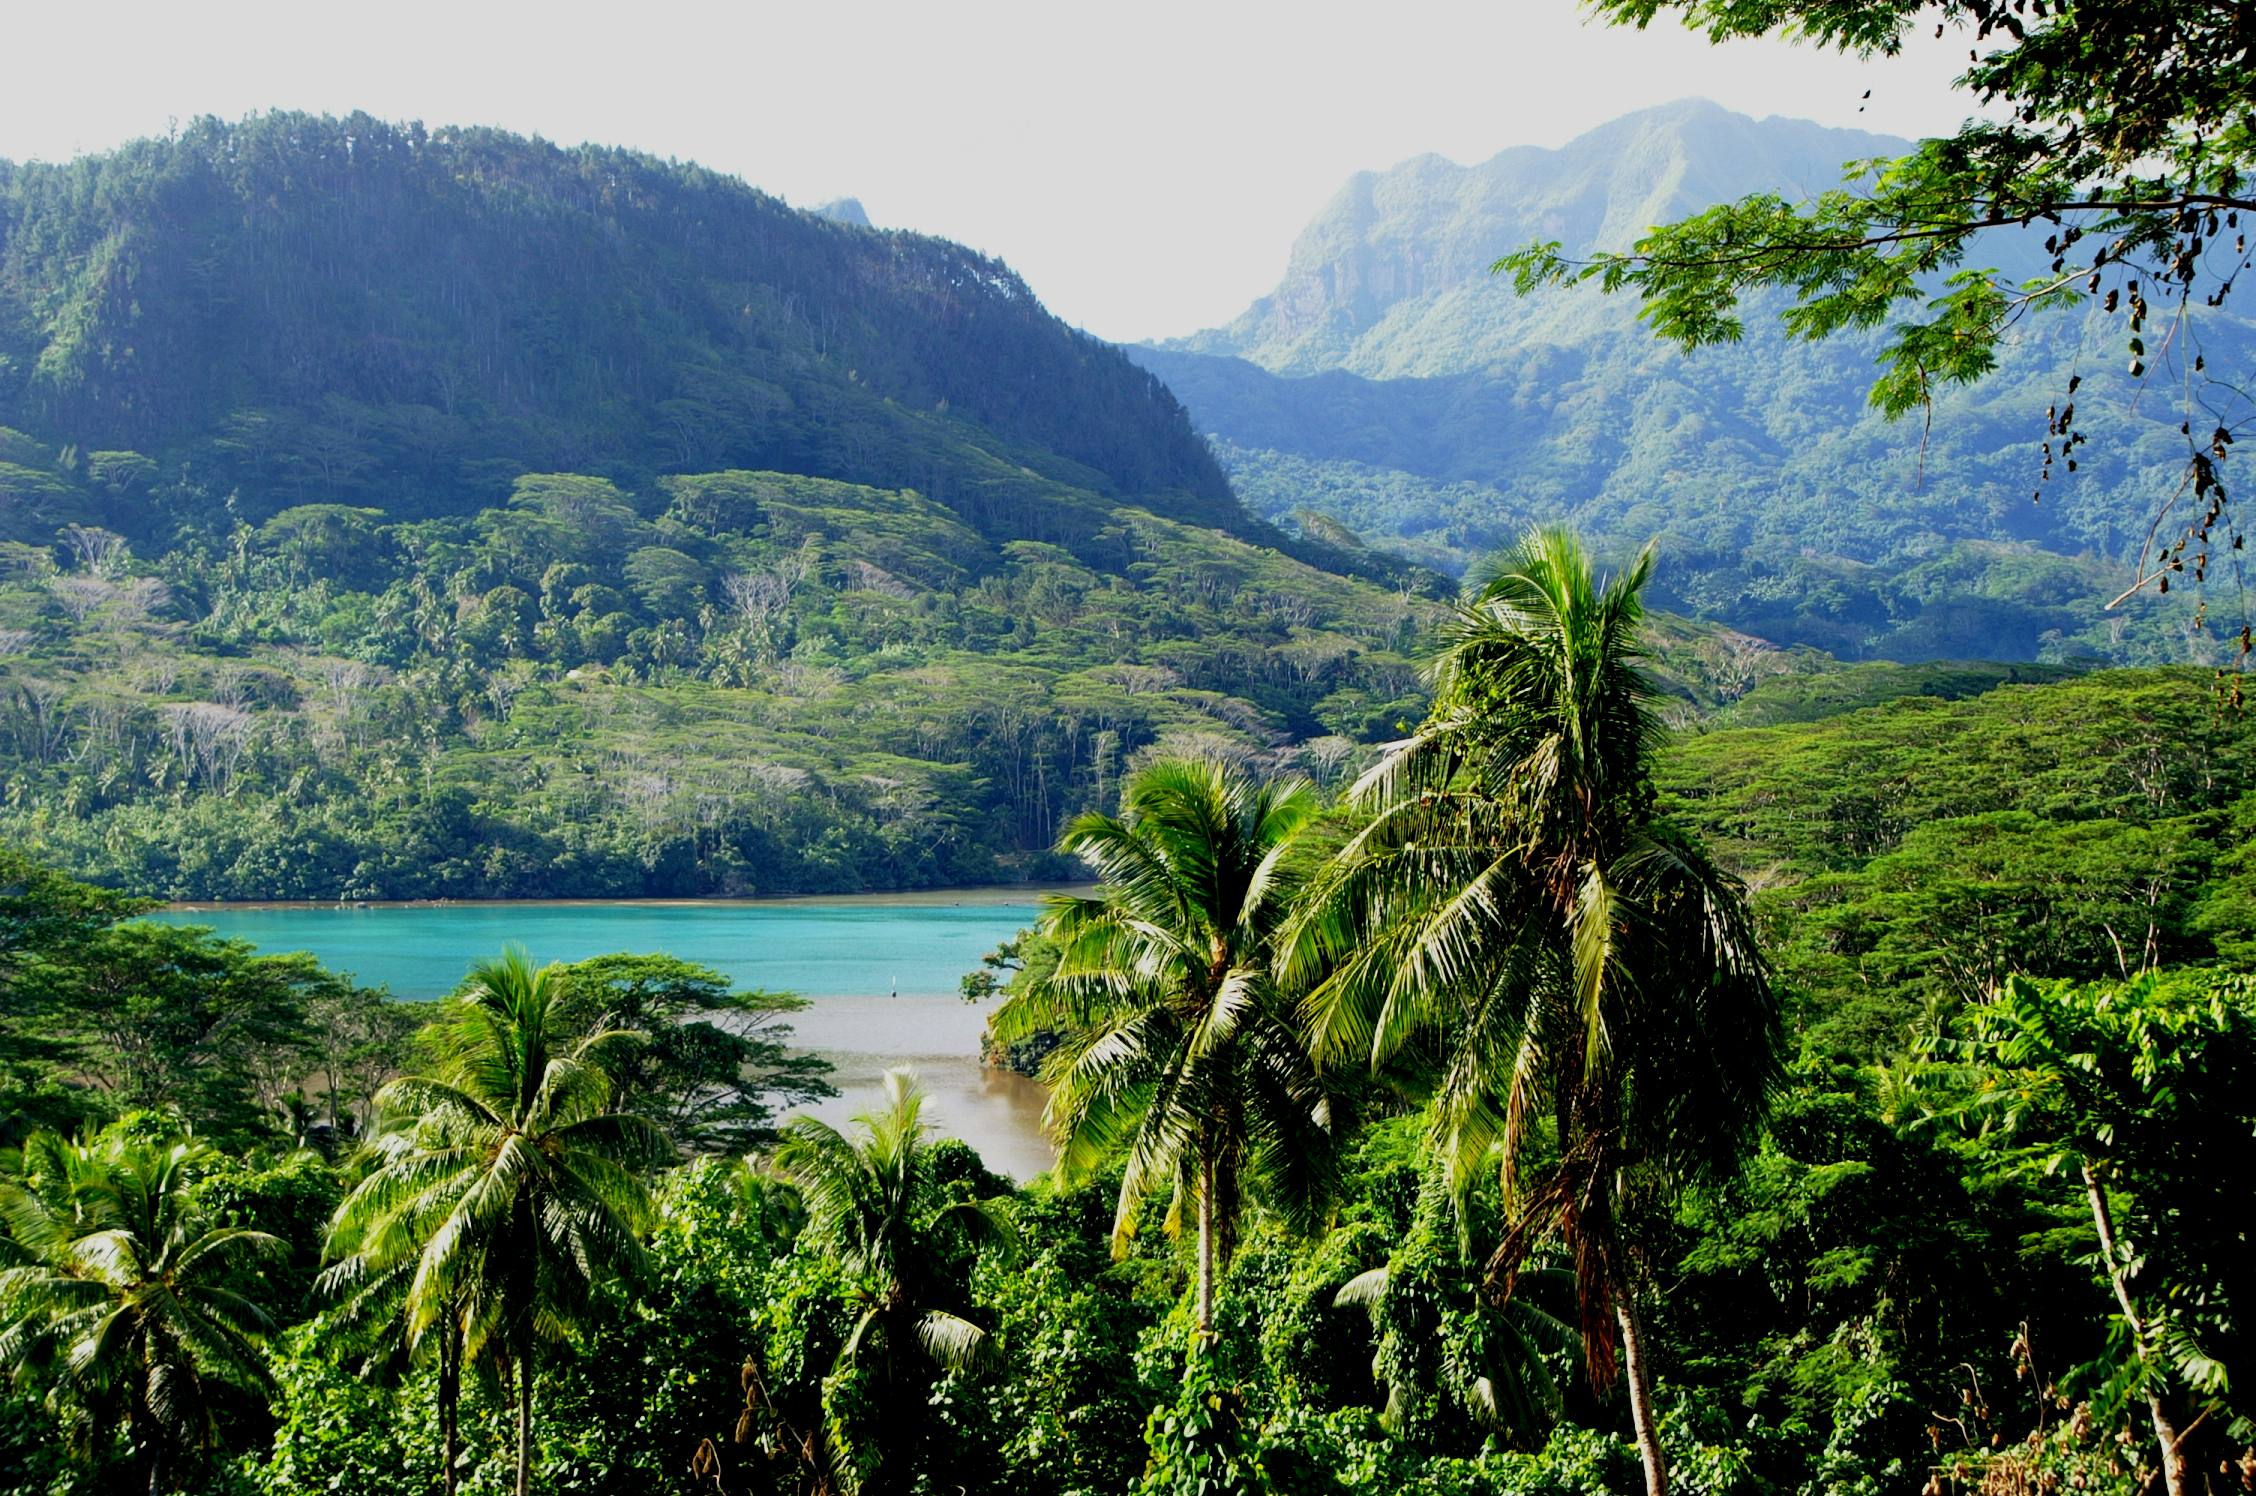 Huahine – Travel guide at Wikivoyage